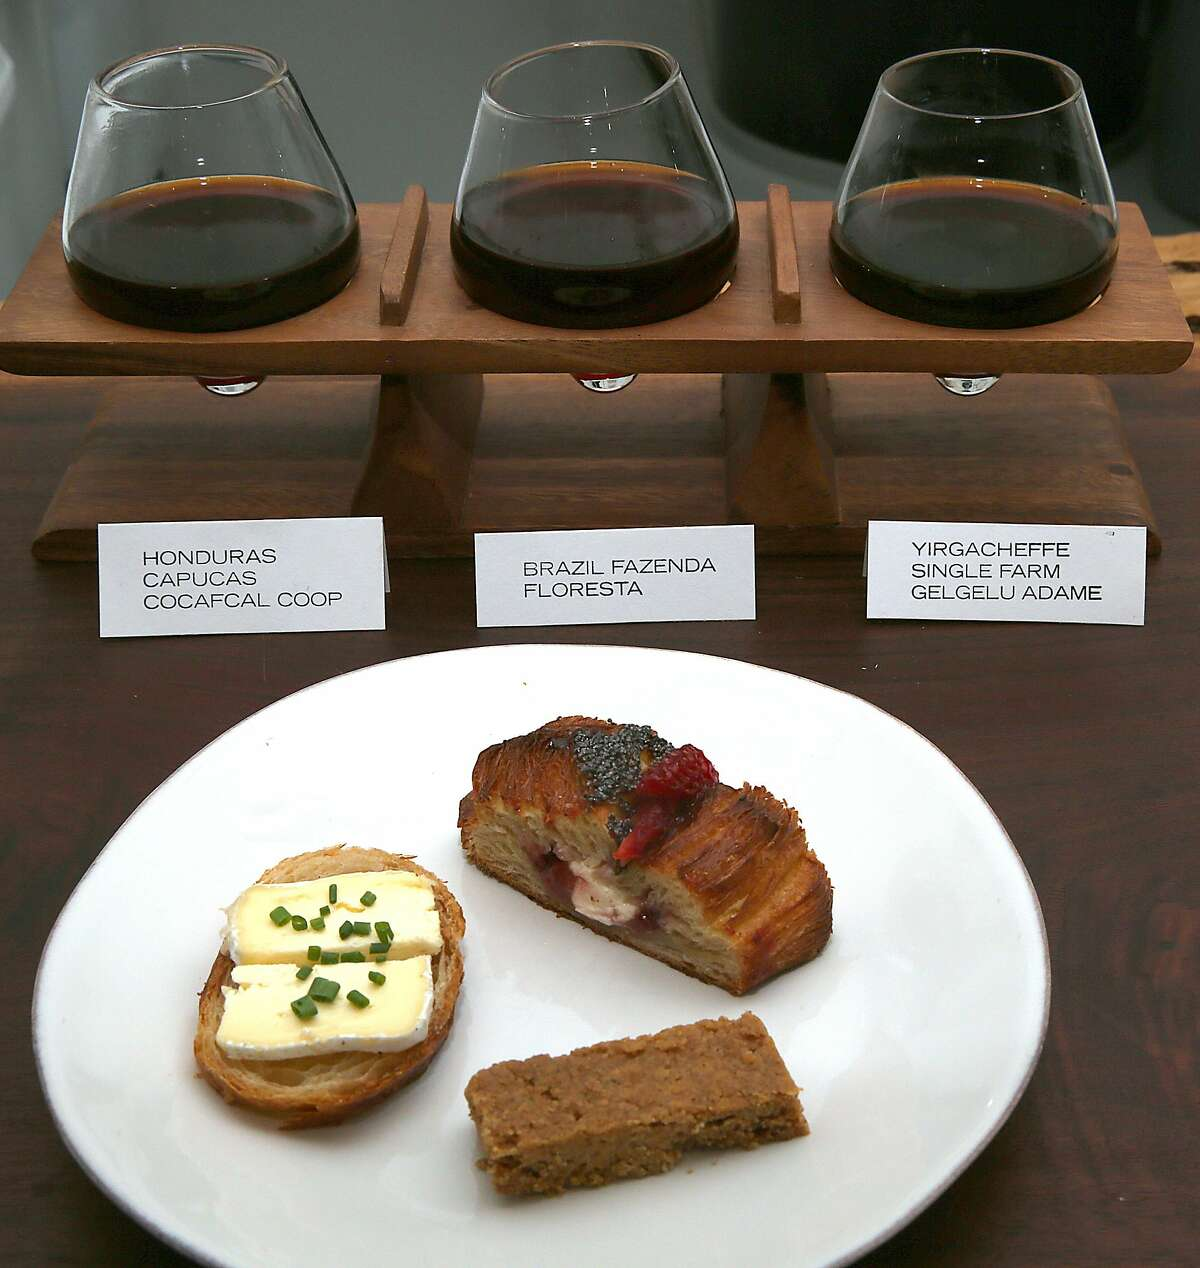 Clockwise from left--Cowgirl Creamery Mt. Tam cheese paired with Yirgacheffe single farm Gelgelu Adame, strawberry danish paired with Brazil Fazenda Floresta, brown butter shortbread paired with Honduras Capucas Cocafcal Coop at Hearth Coffee Roasters in San Francisco, California, on Wednesday, May 6, 2015.